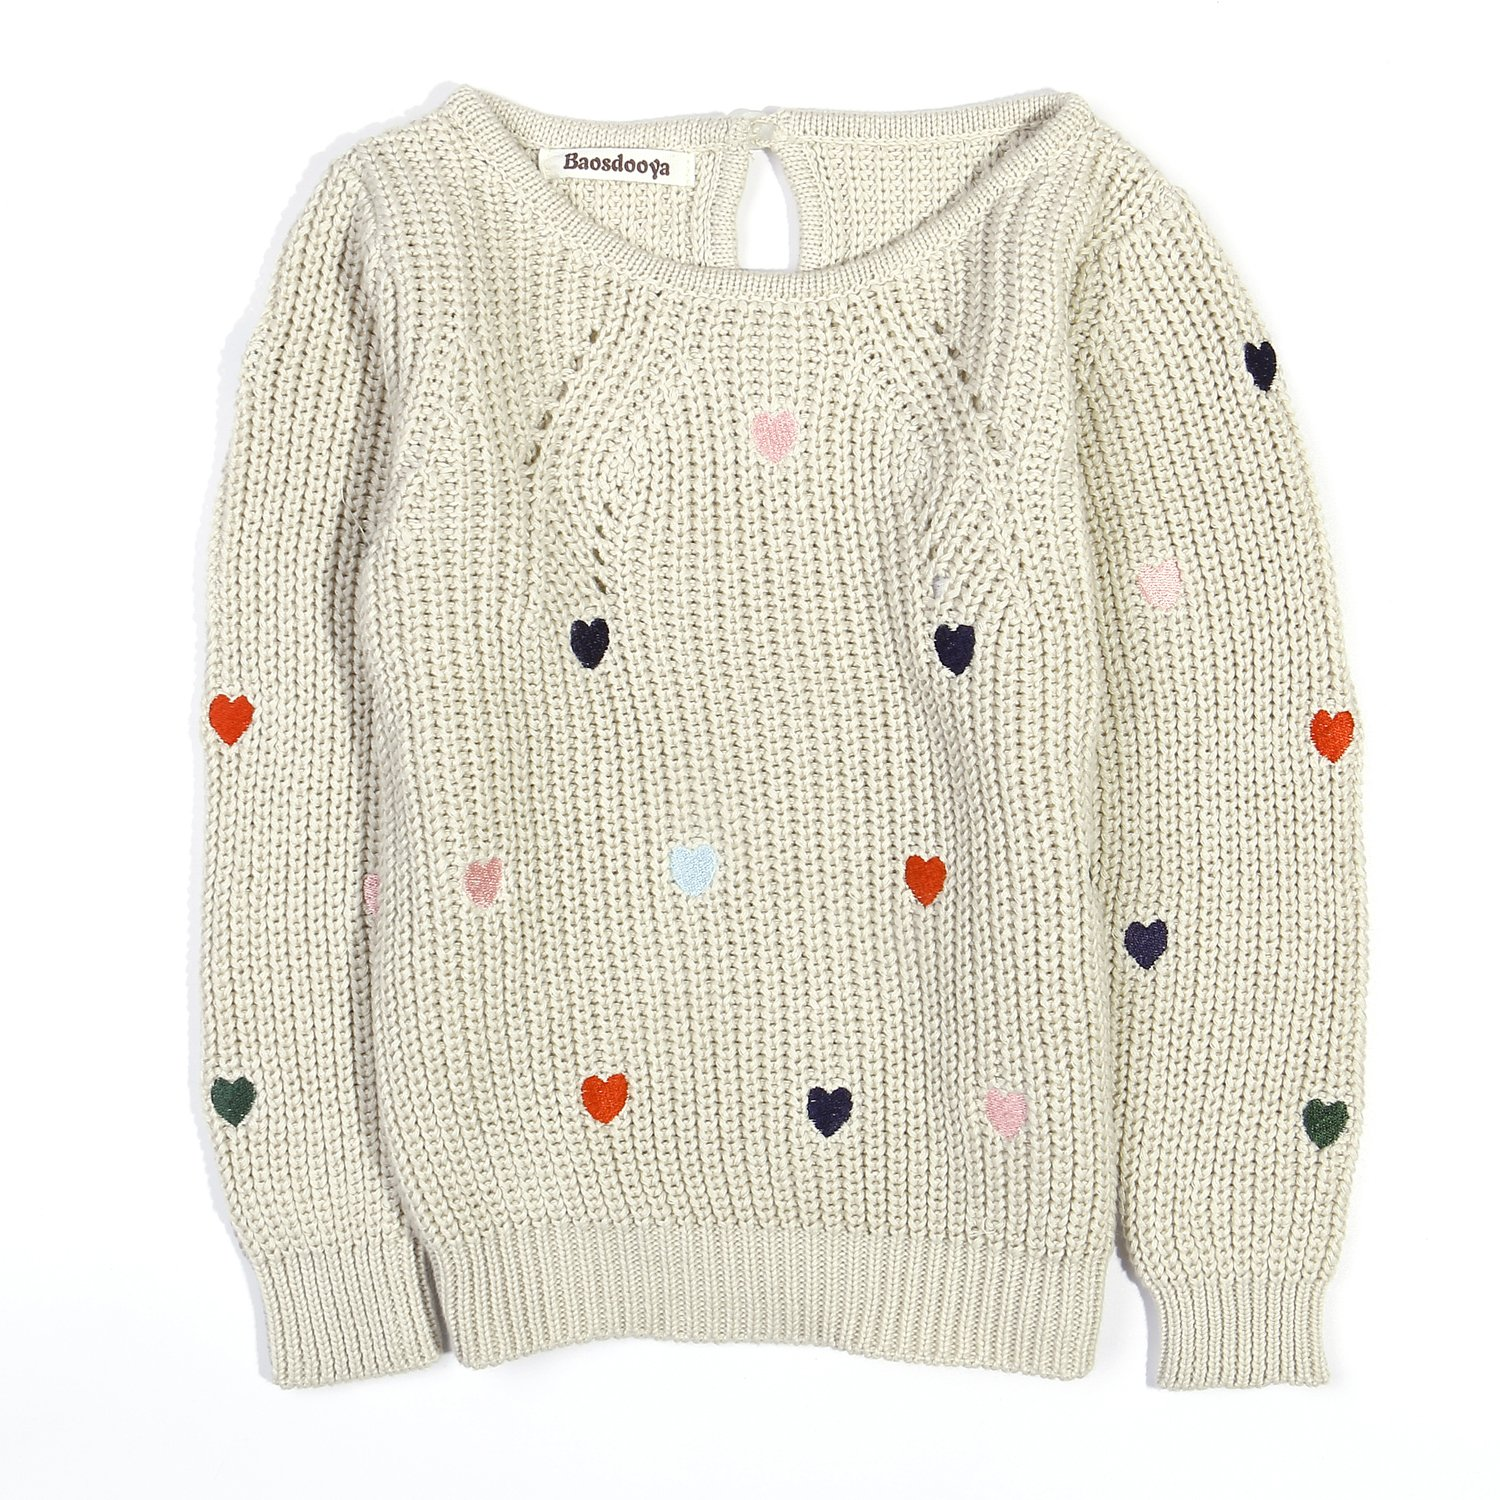 Baosdooya Pullover Sweater for Girl